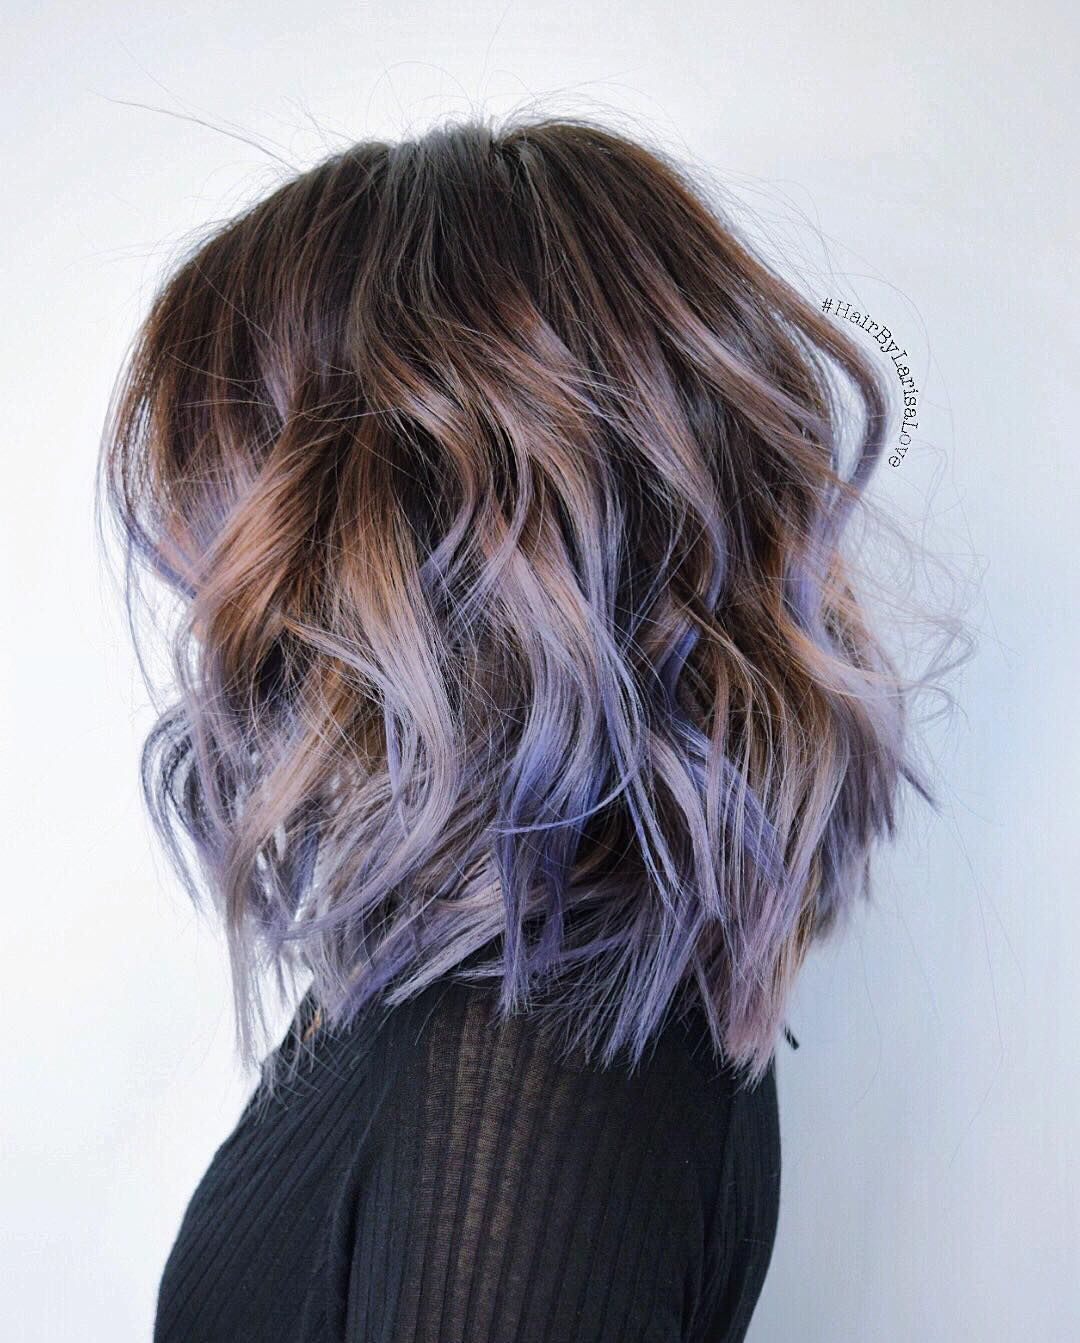 fall hair colors and styles 30 trendy hairstyles for fall stylish fall hair color 2260